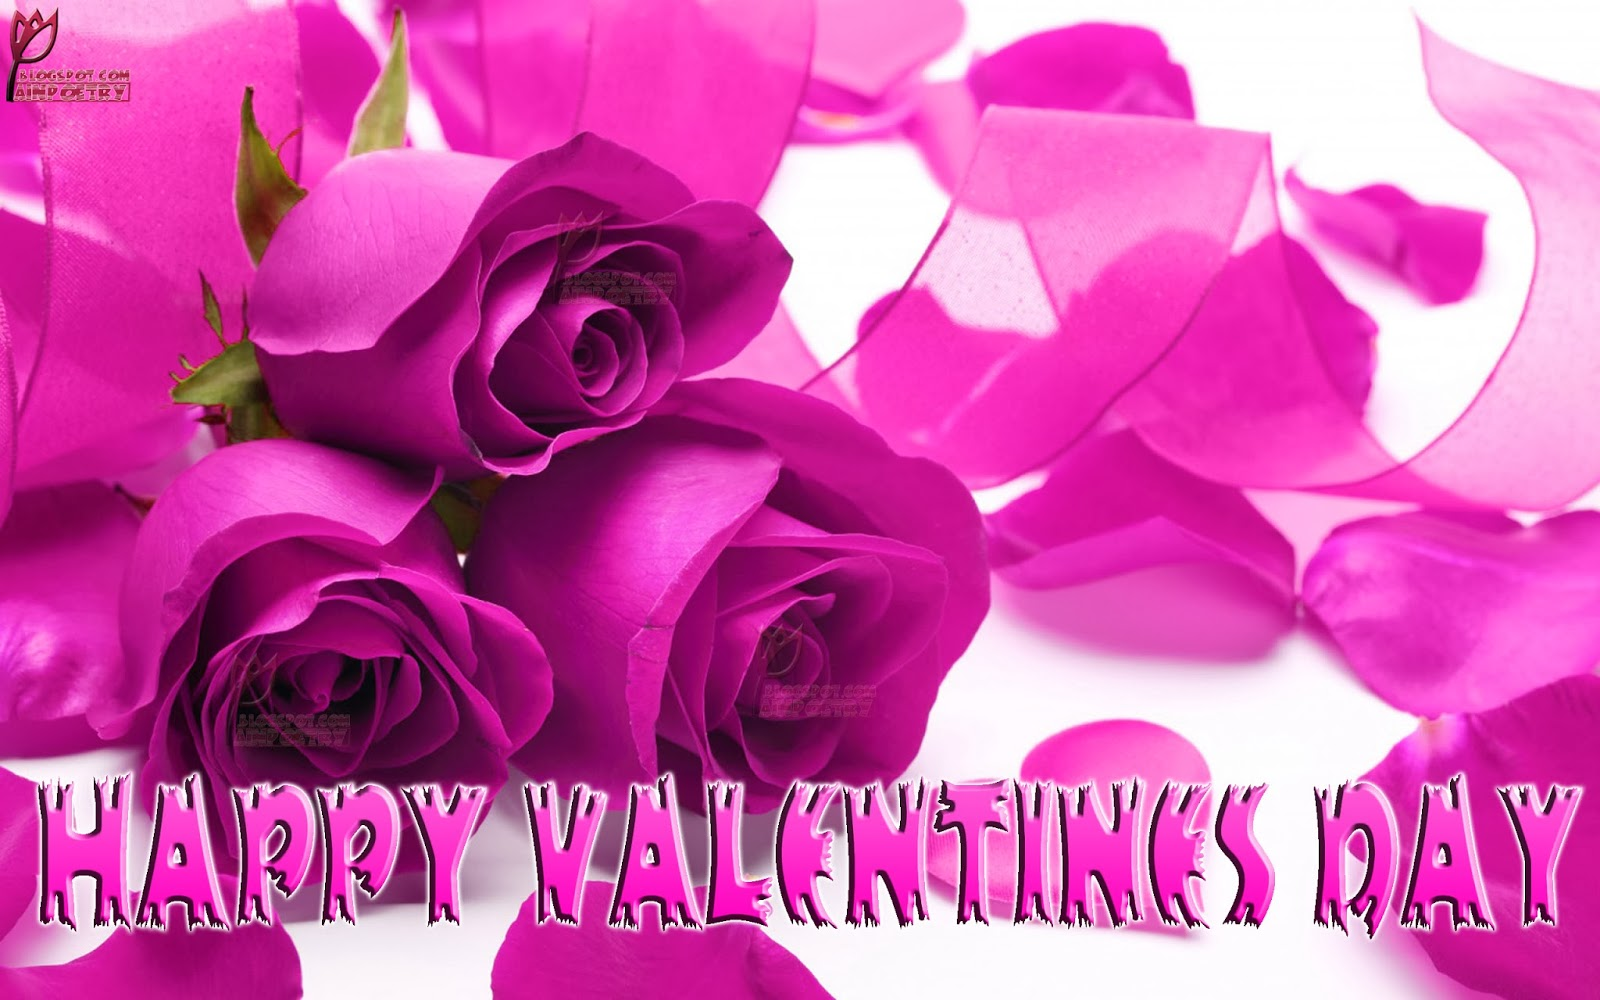 Happy-Valentines-Day-Wishes-Wallpaper-With-Flowers-Image-HD-Wide